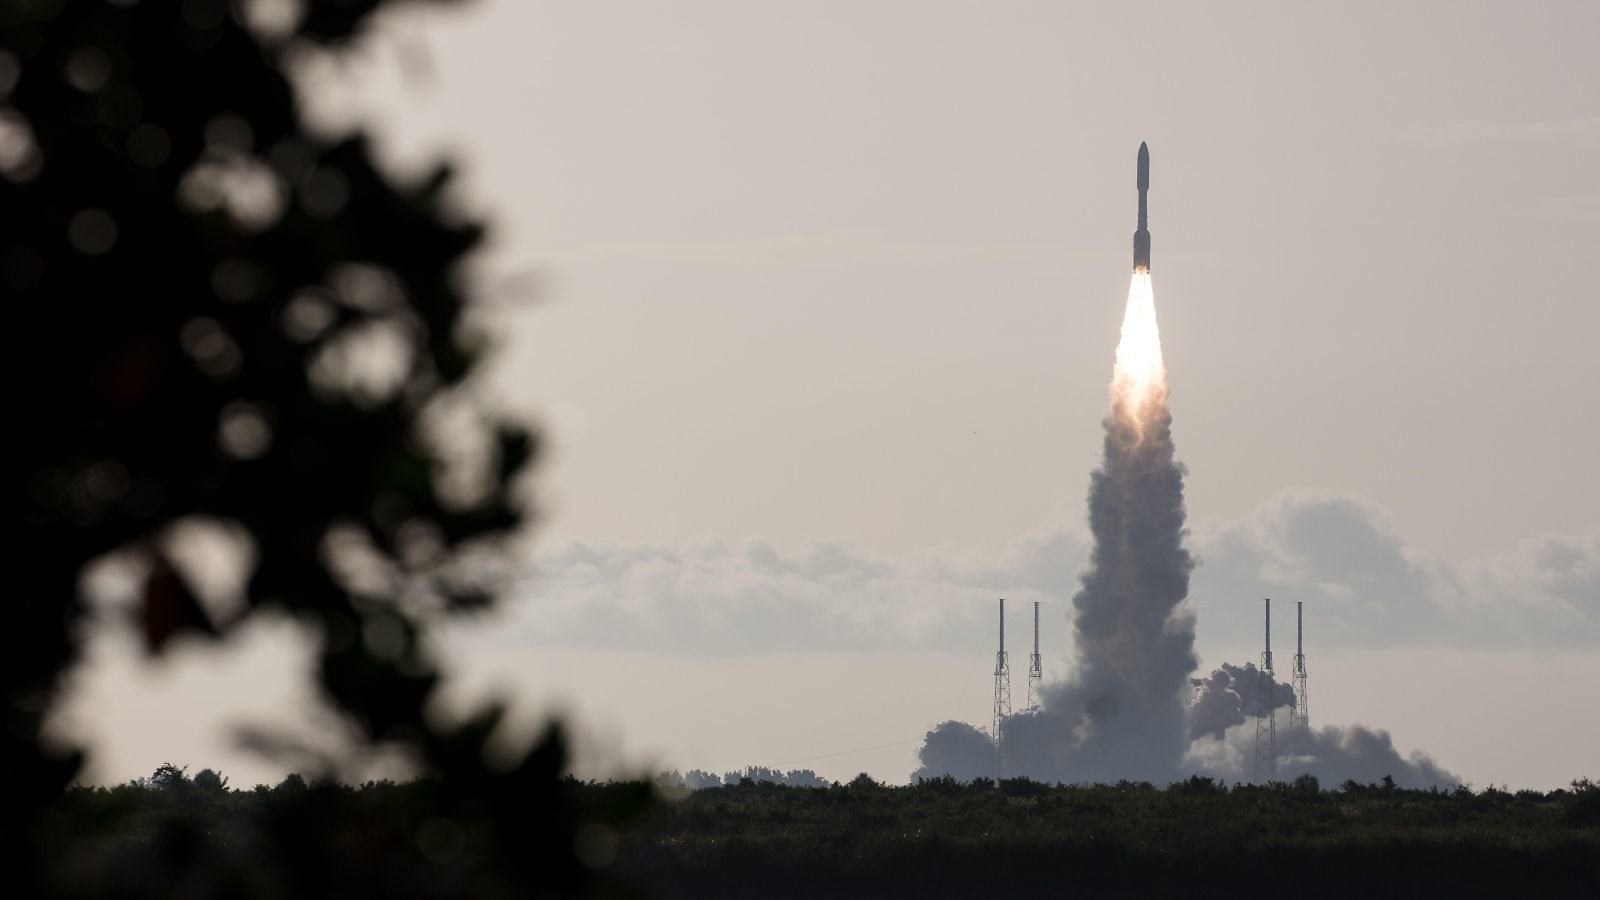 NASA Flawlessly Launches Perseverance, Its Most Ambitious Mars Rover Yet